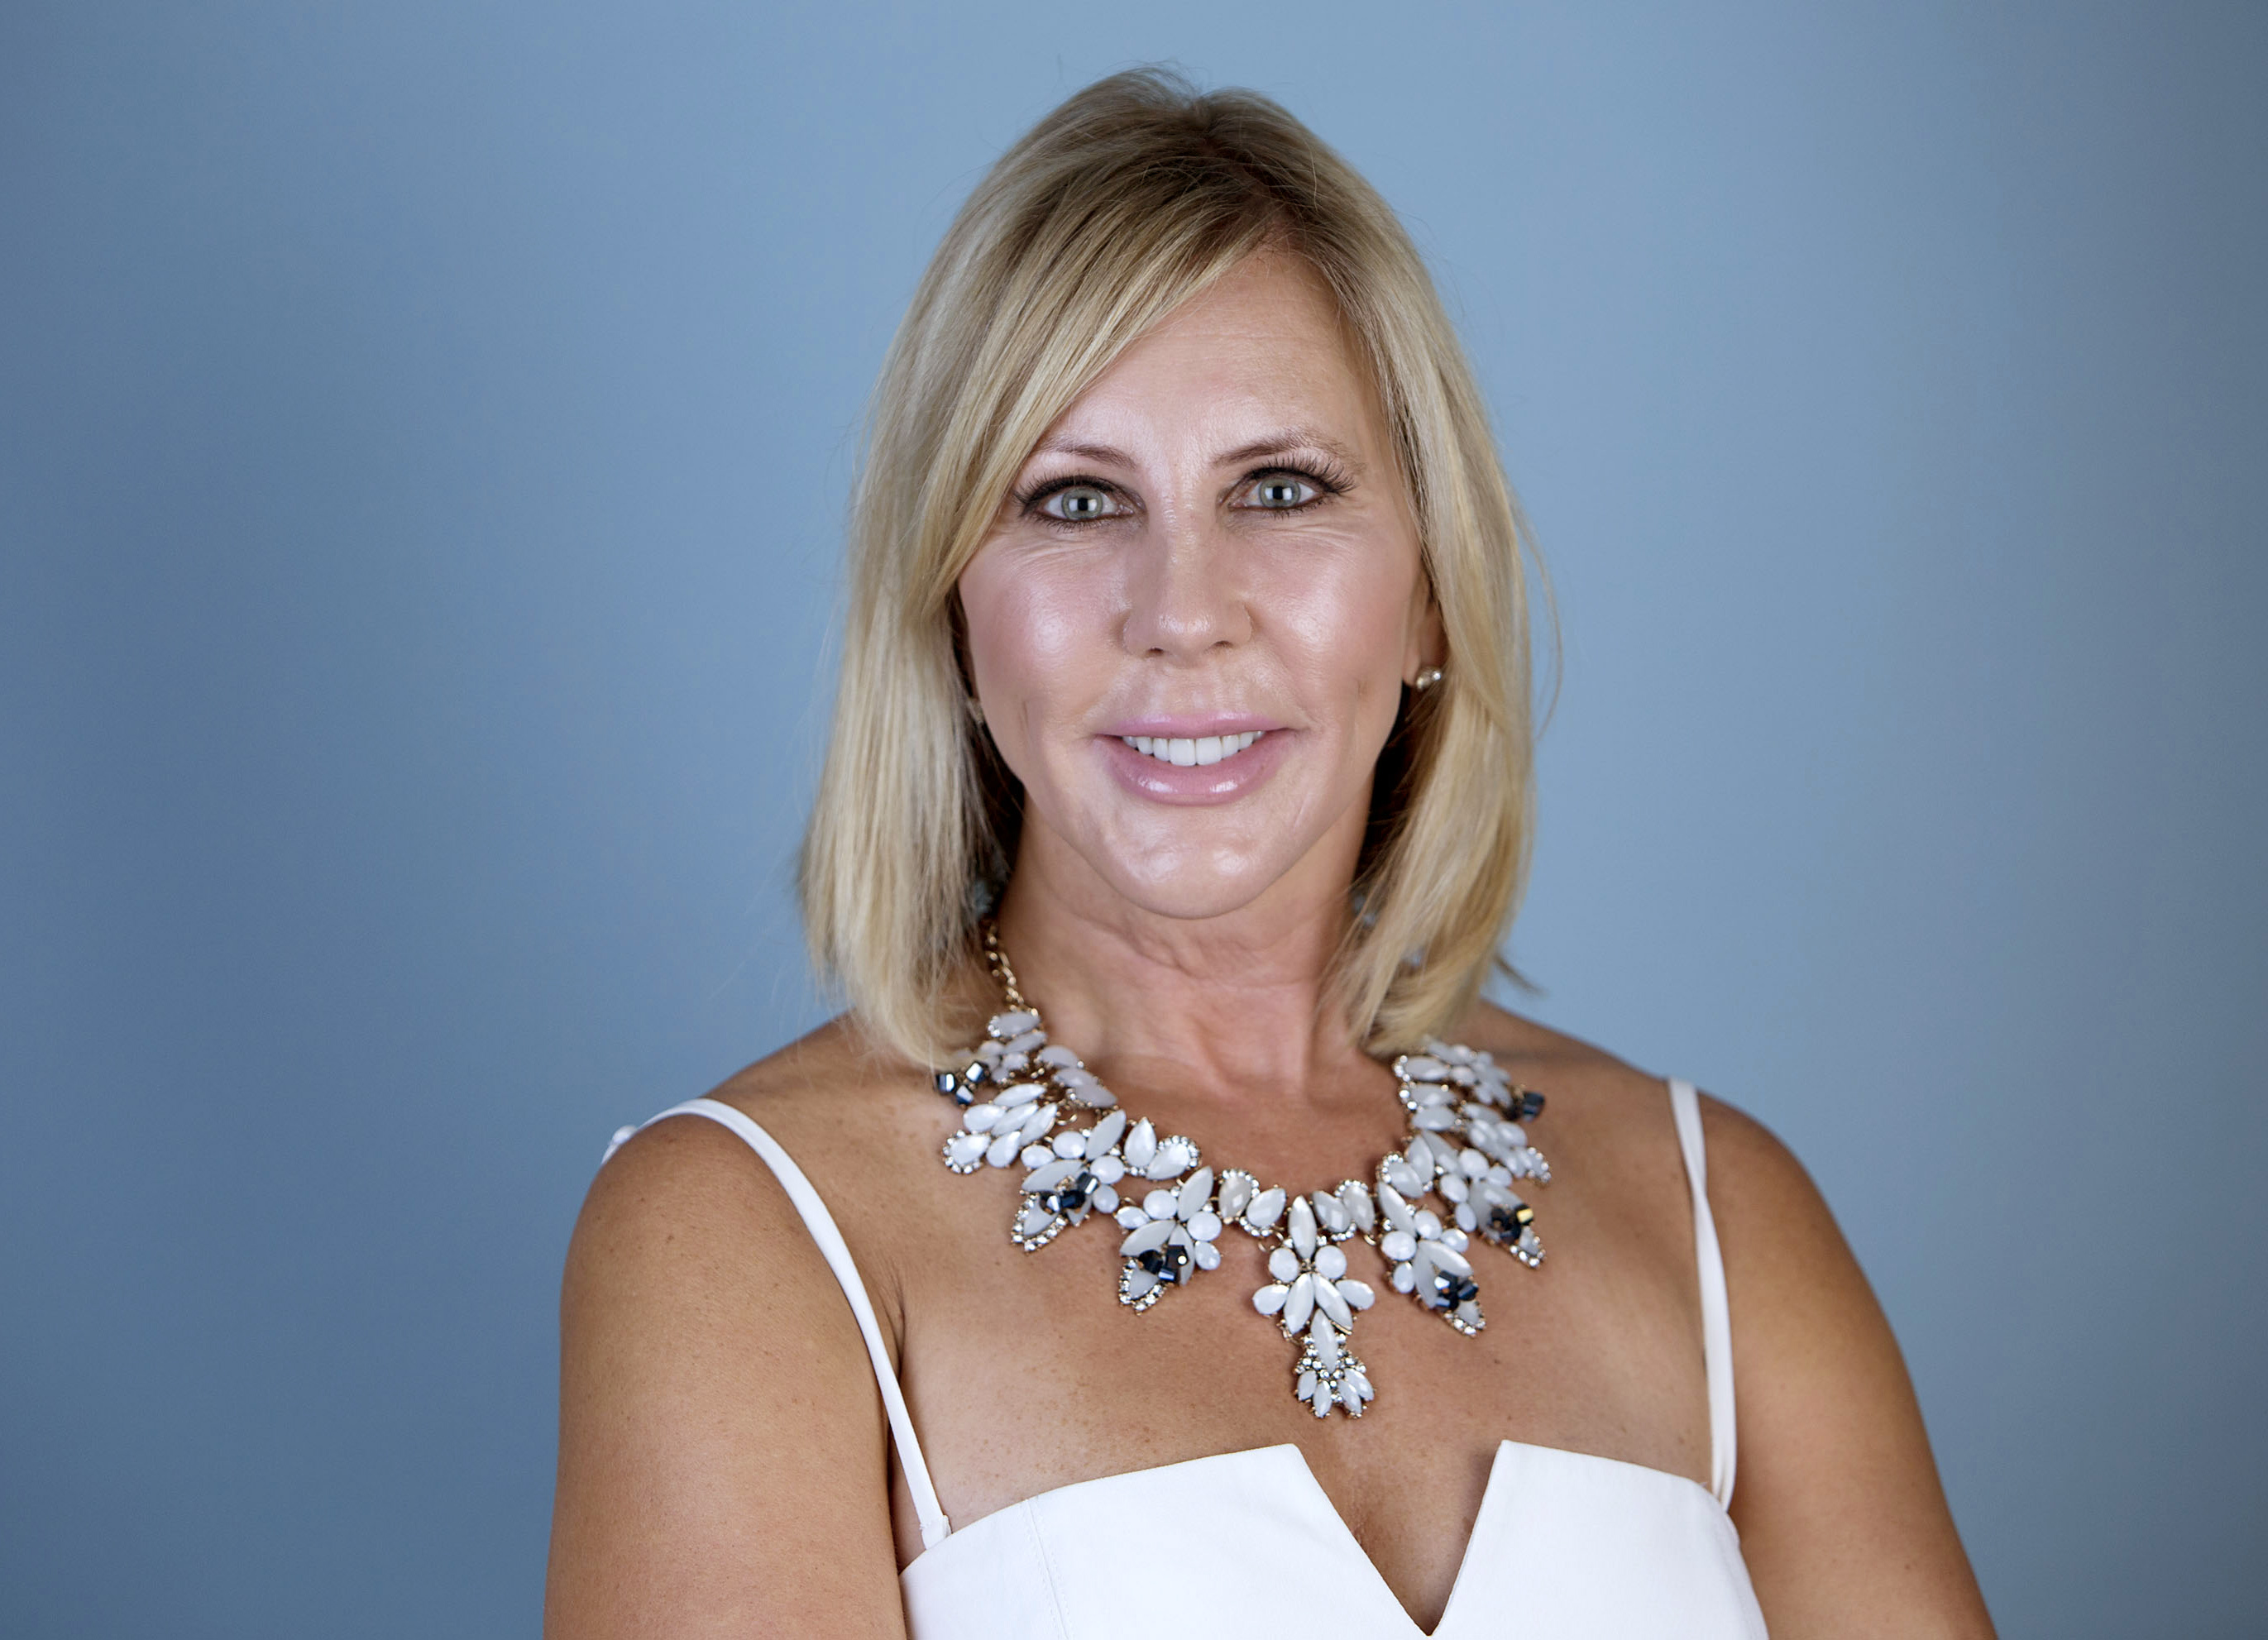 Real Housewife Vicki Gunvalson gets real about reality TV